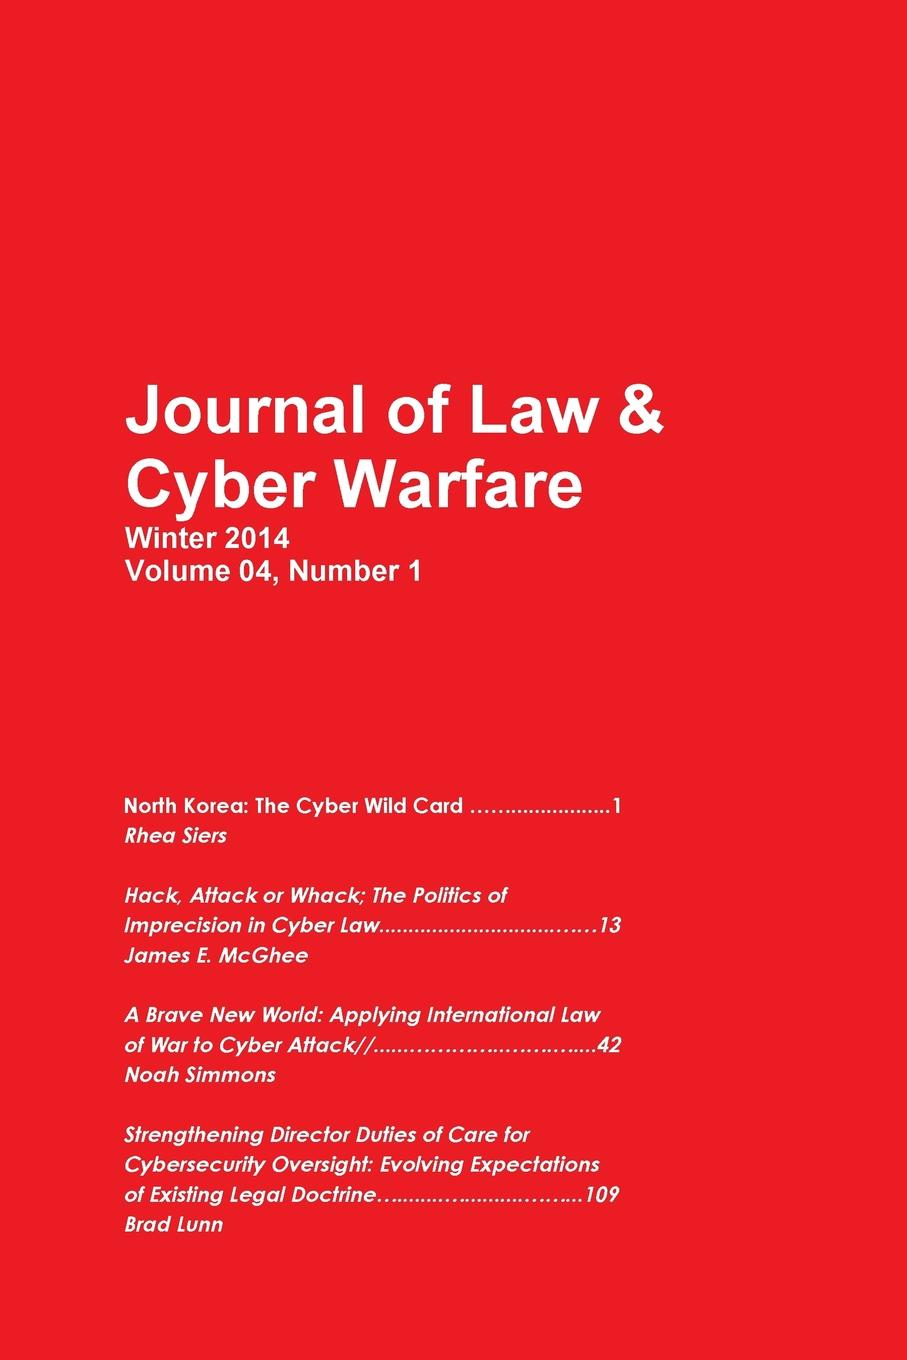 Journal of Law Cyber Warfare Cyber Warfare North Korea, Hack, Attack, Wack, International Law, Cybersecurity bdsm and the law